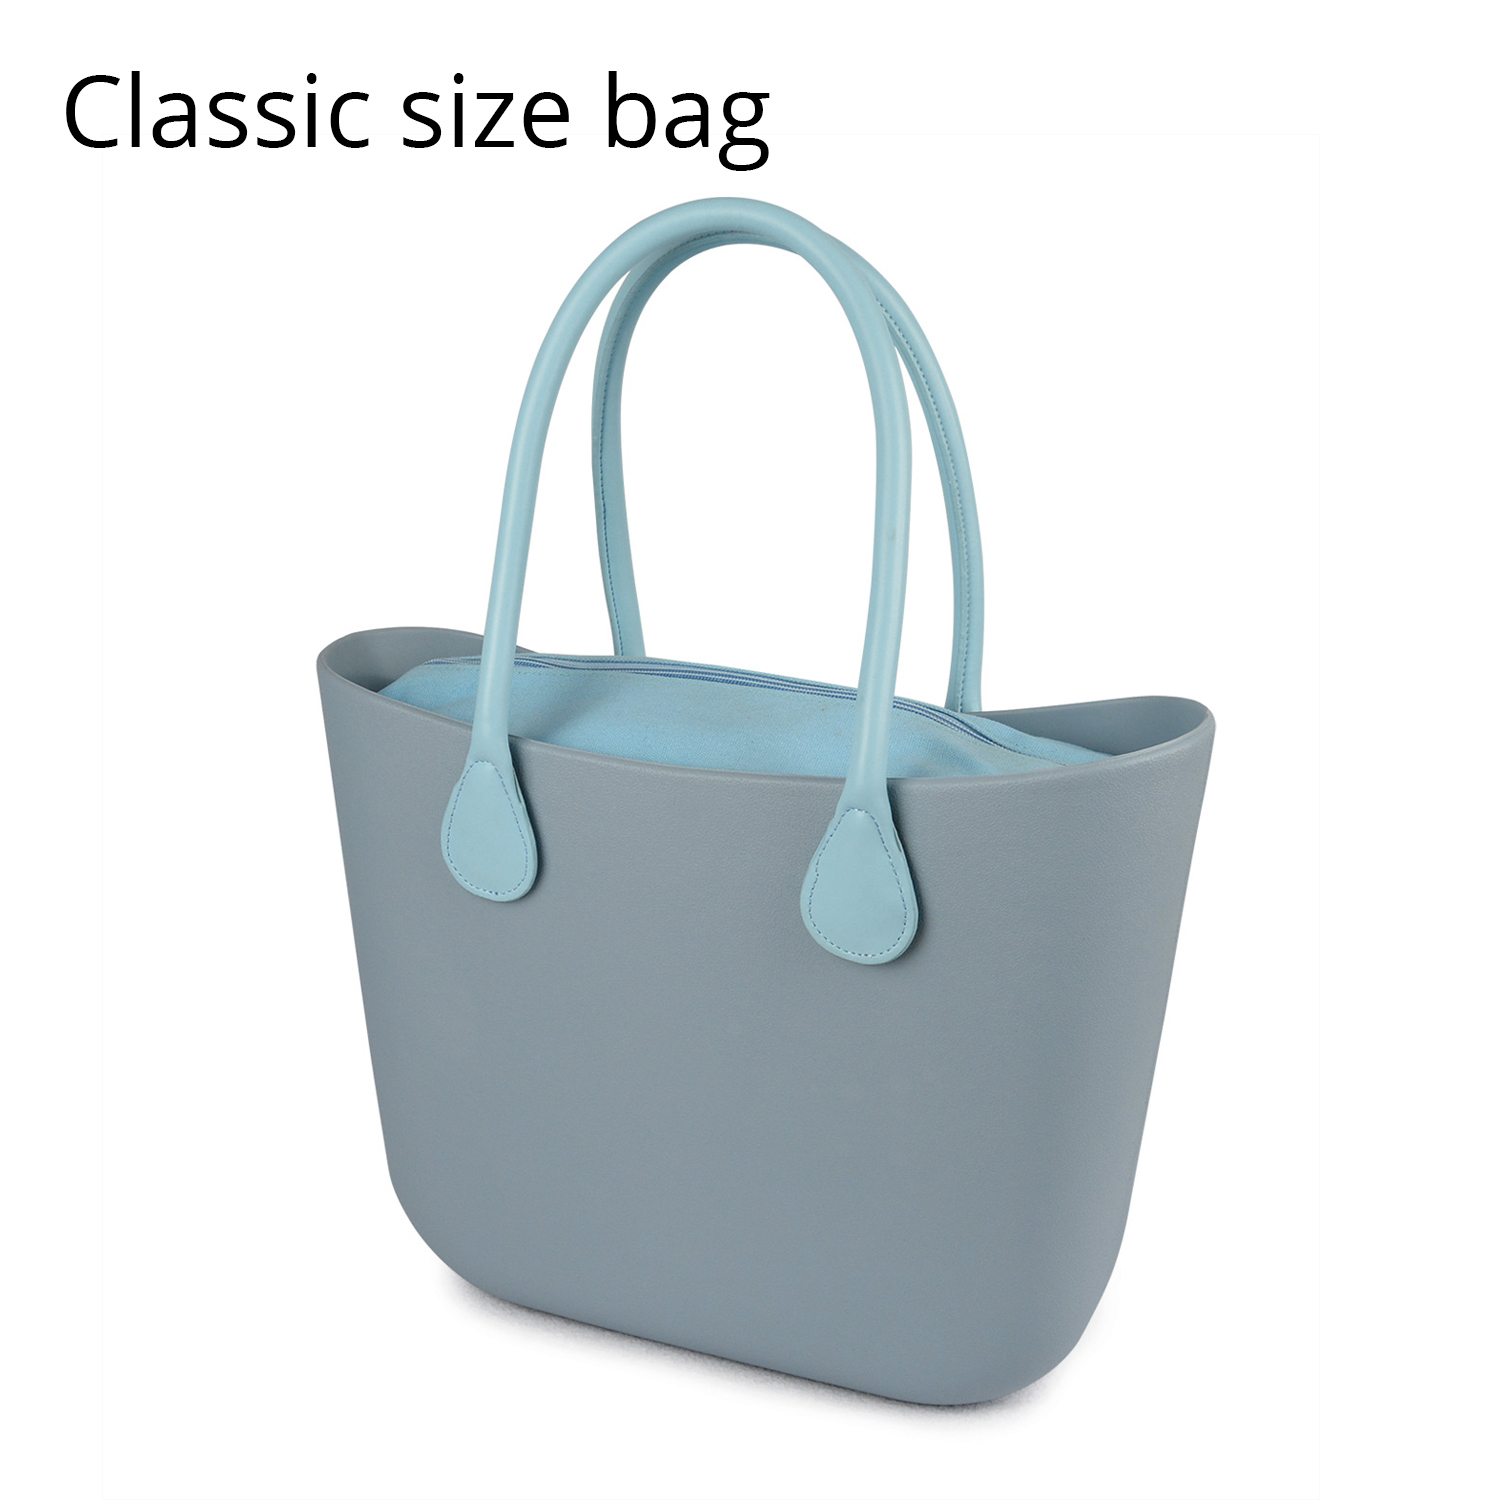 2019 New Obag Style Classic EVA Bag with Insert Inner Pocket Handles Colorful EVA Silicon Rubber